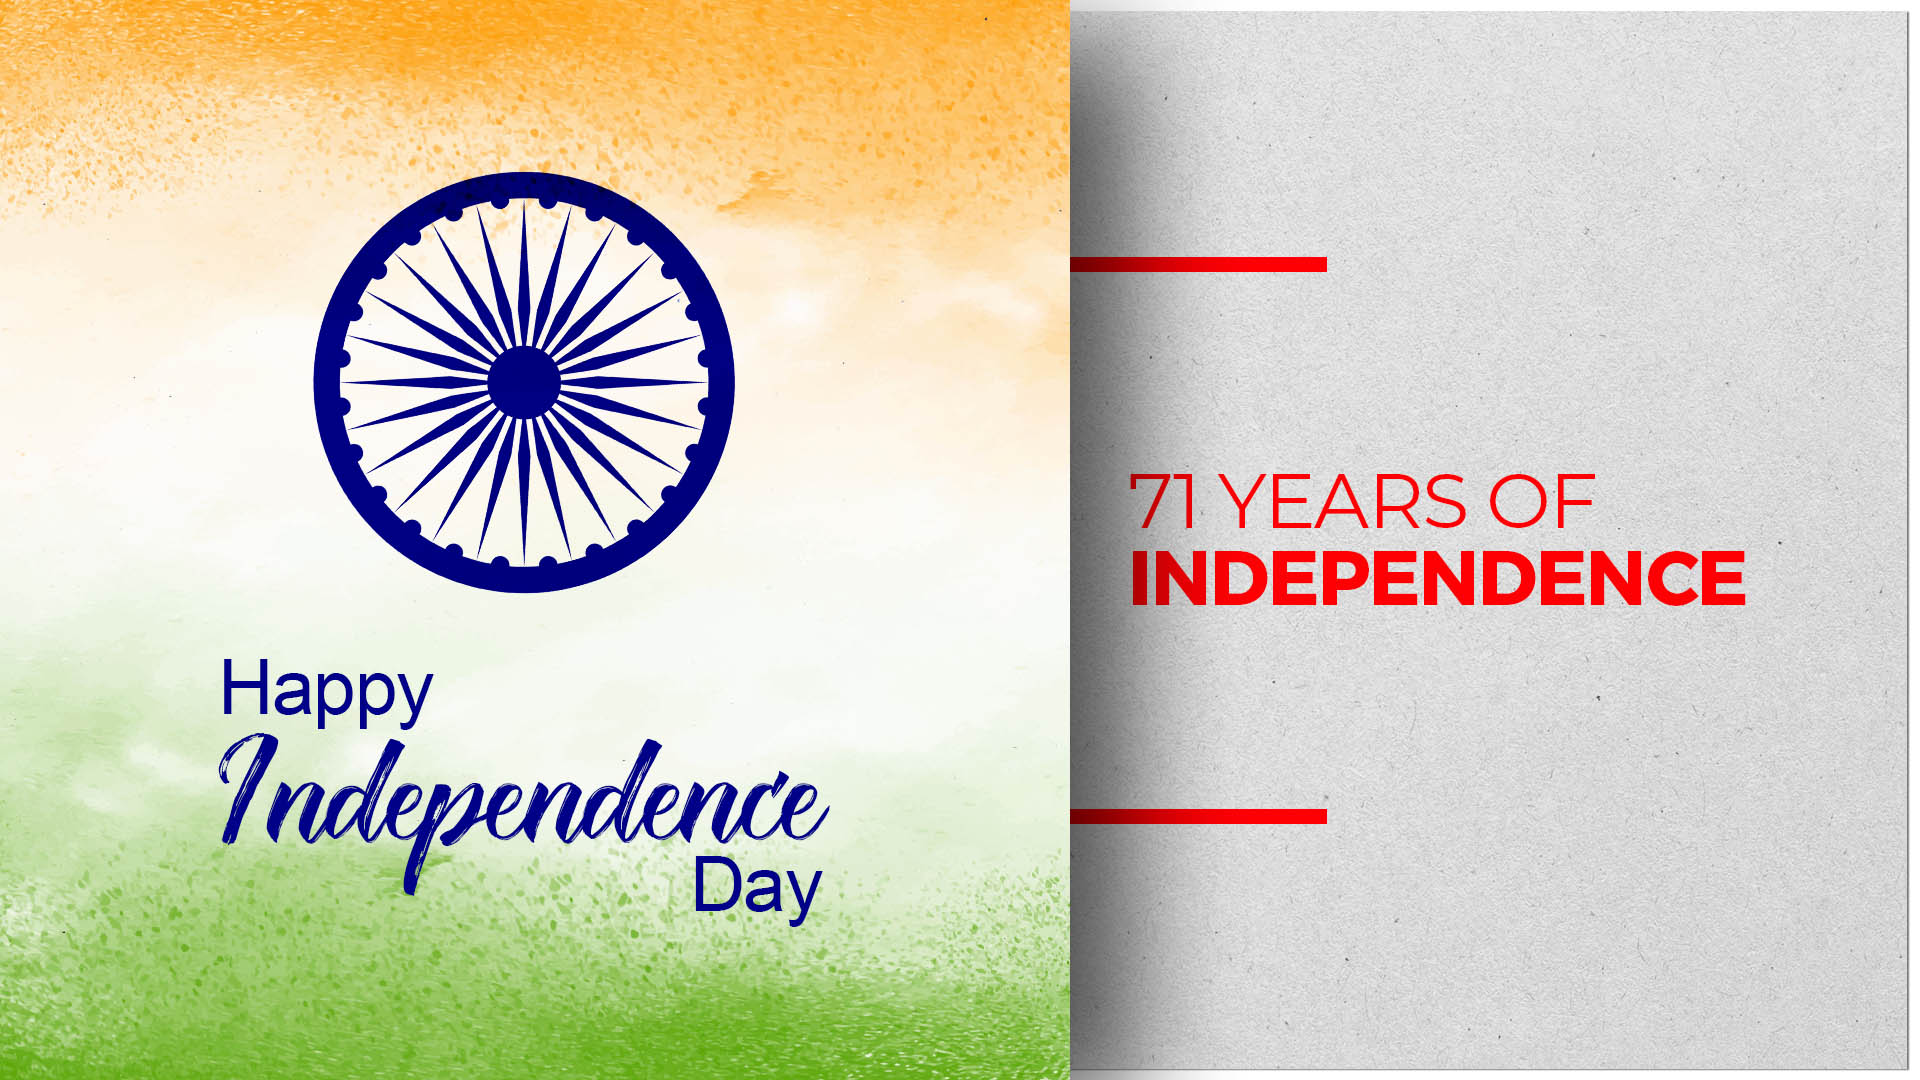 71 Years of Independence - Housing for All by 2022?